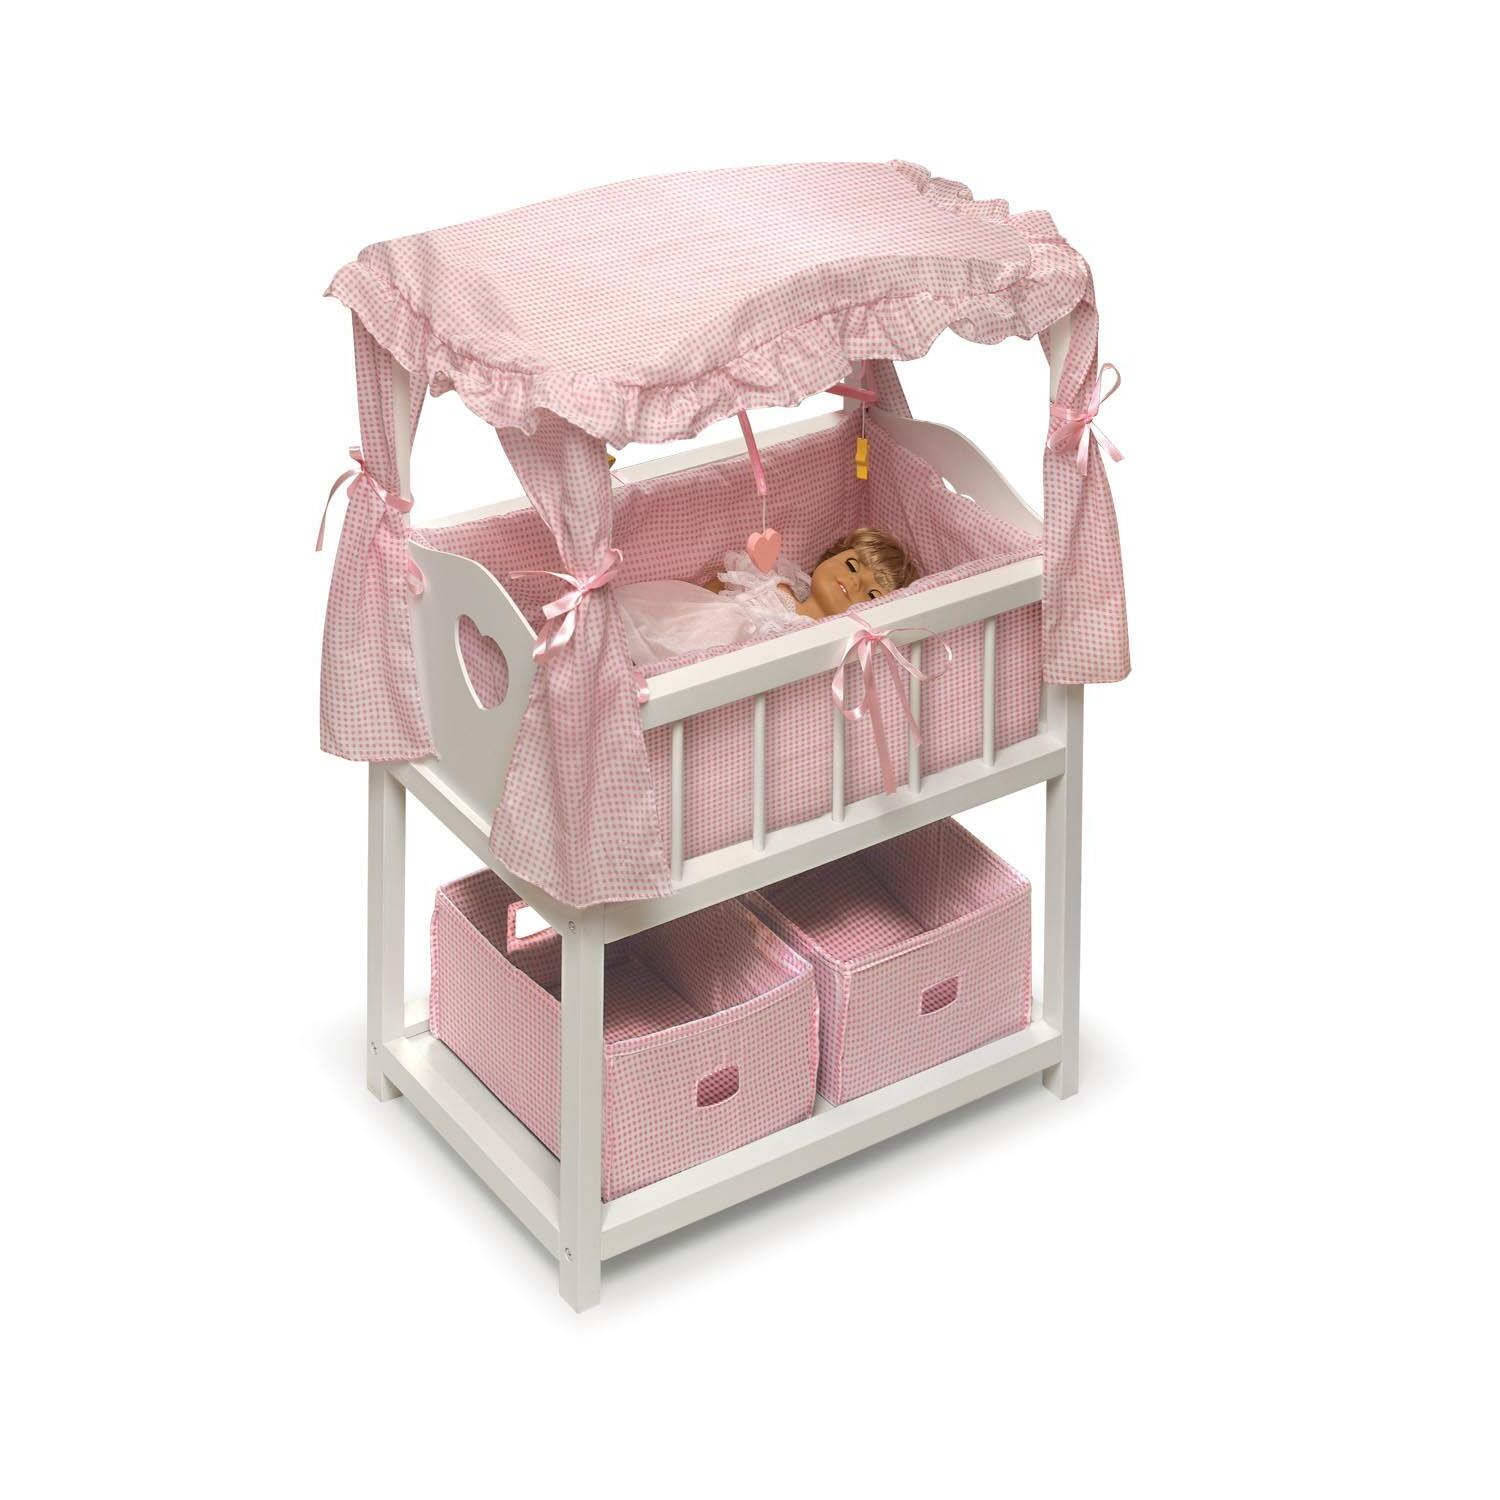 Canopied Doll Crib Furniture Set From 162 99 To 216 99